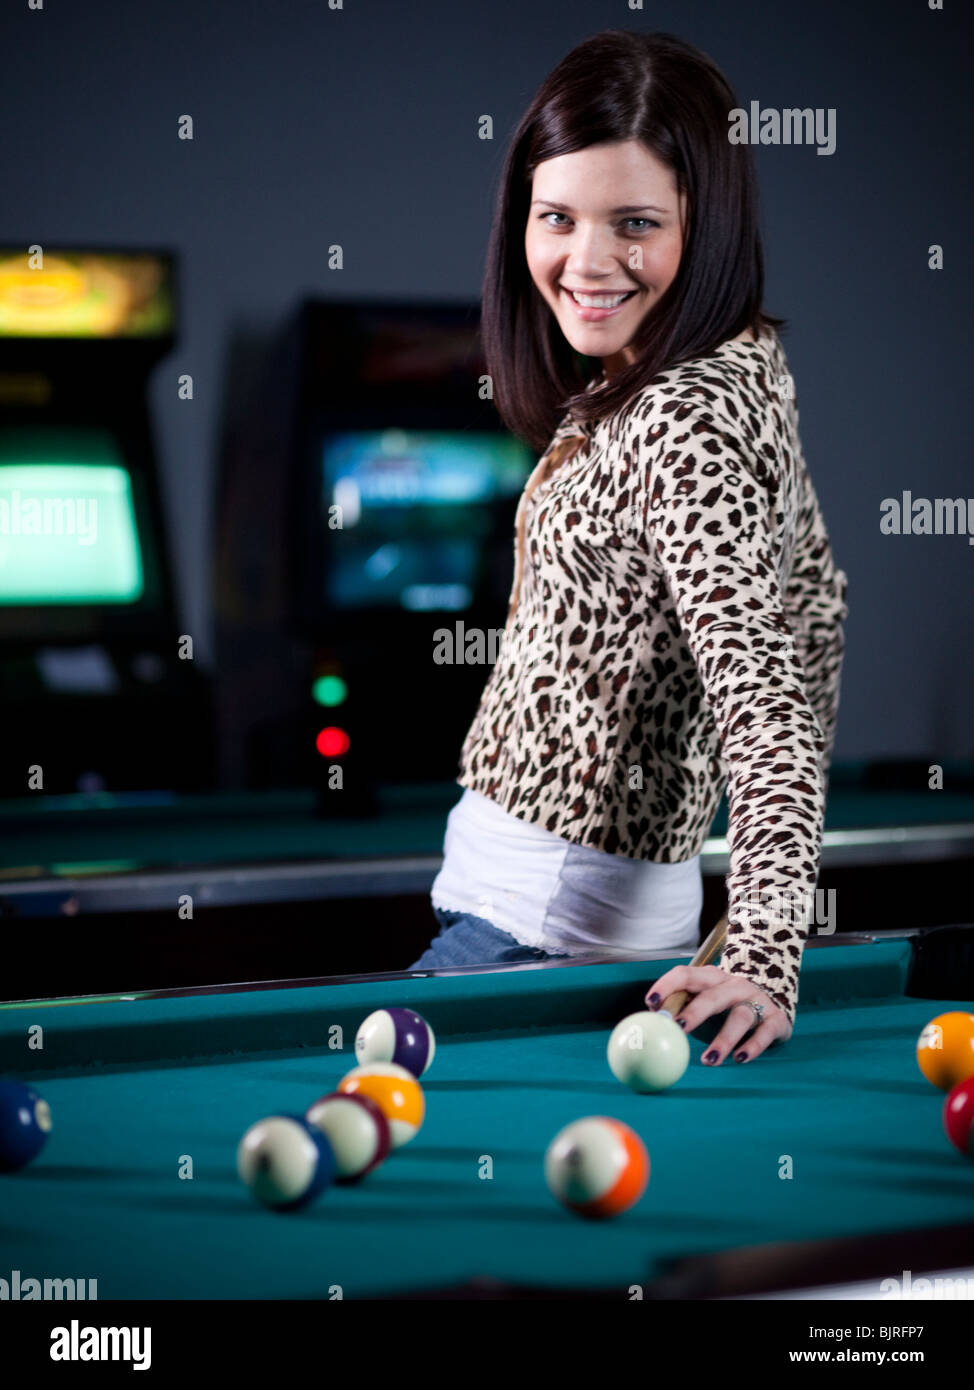 USA, Utah, American Fork, young woman standing in playroom with pool cue behind her back - Stock Image